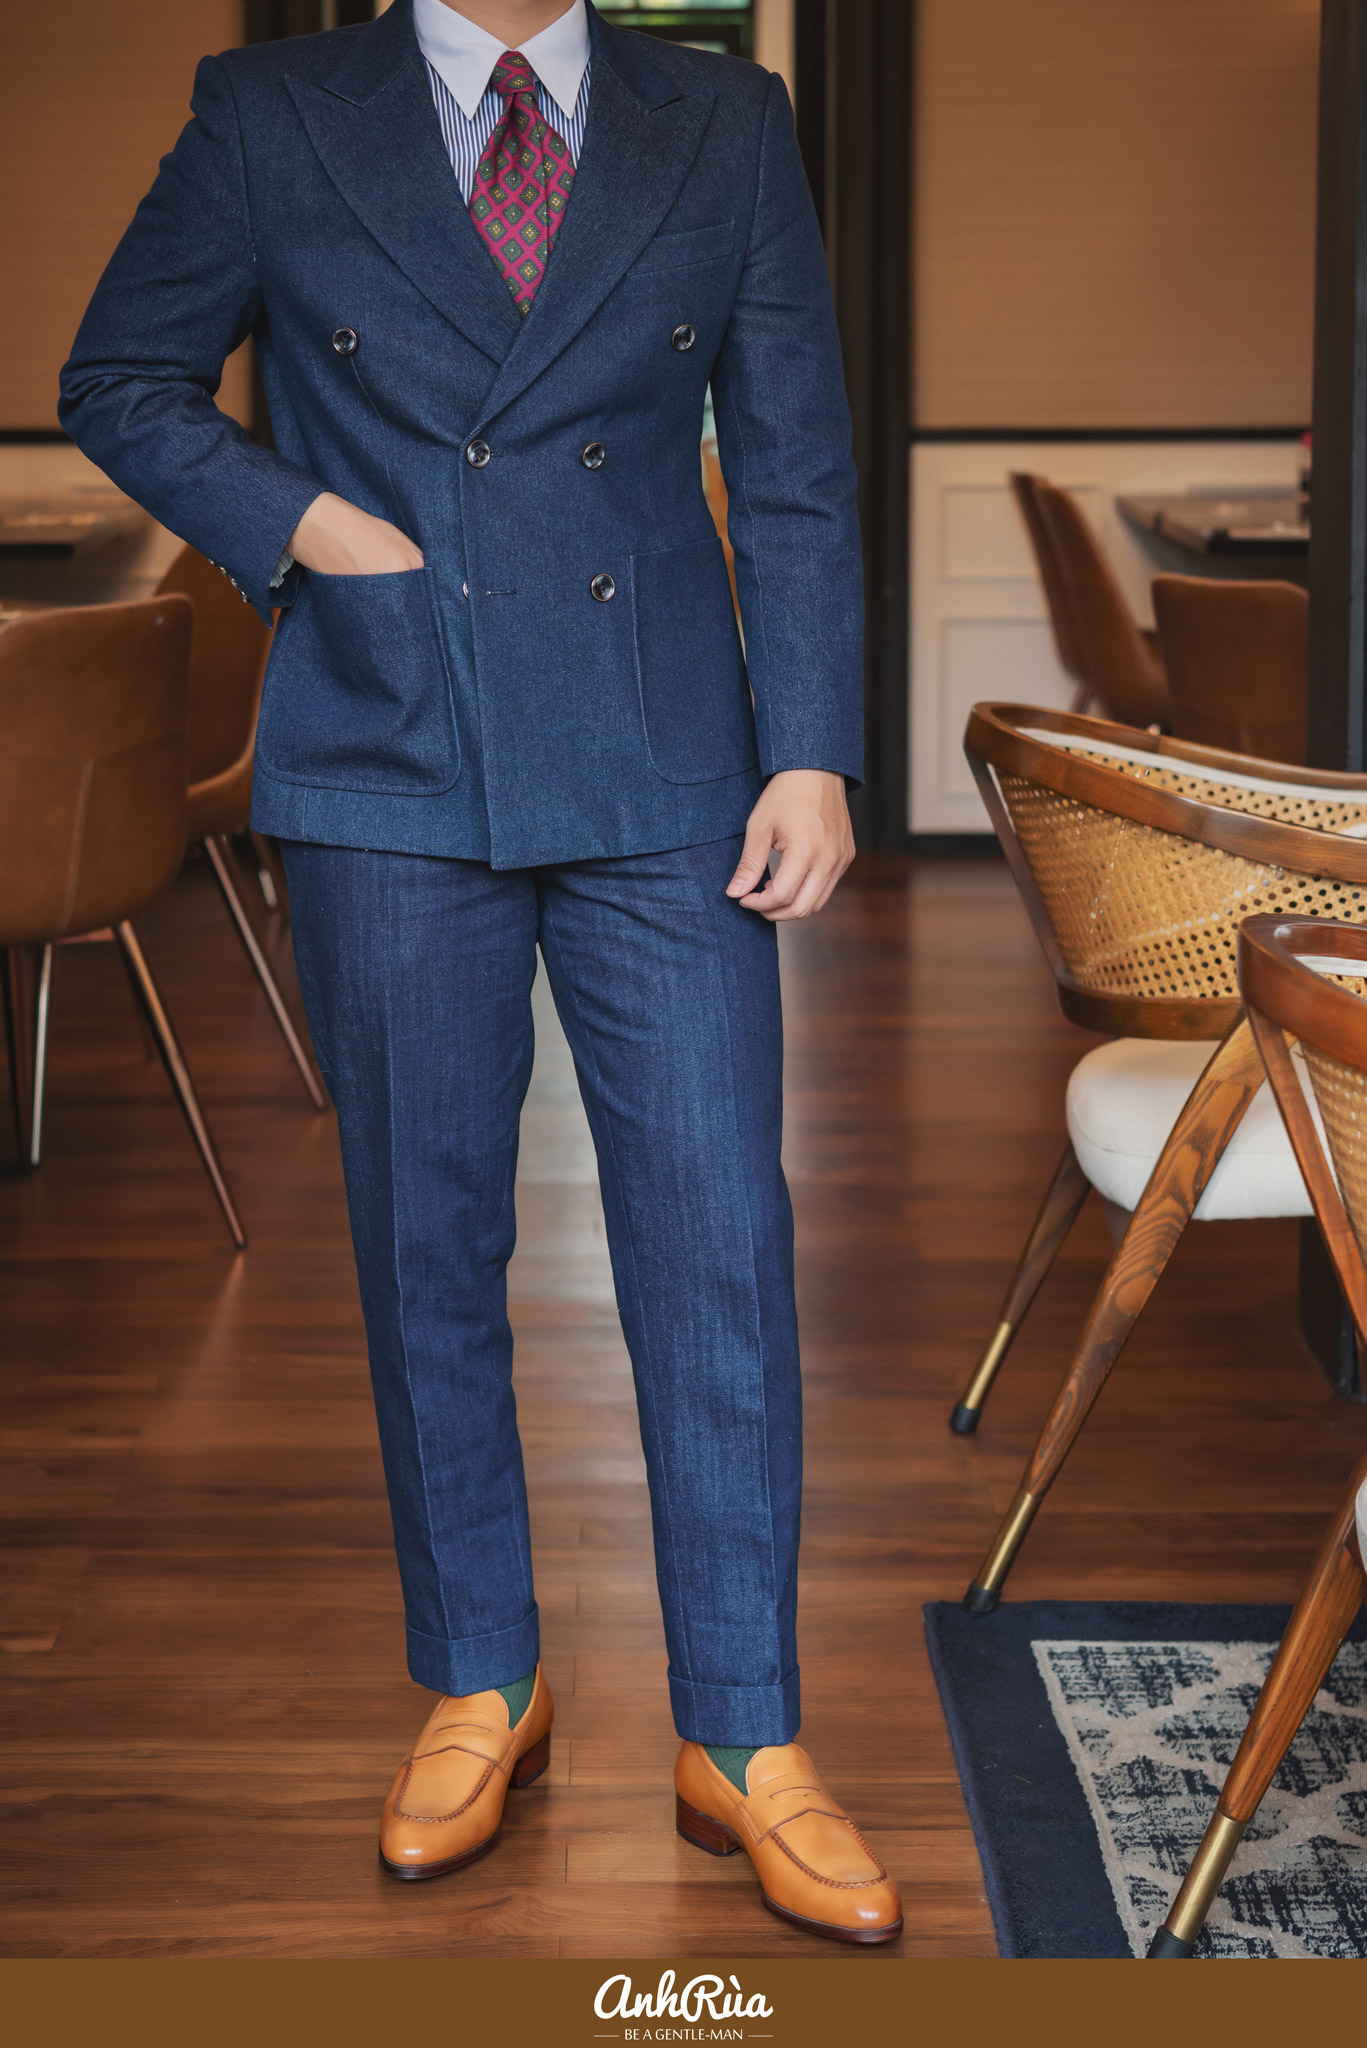 Denim double breasted suit với Light Brown Penny Loafers